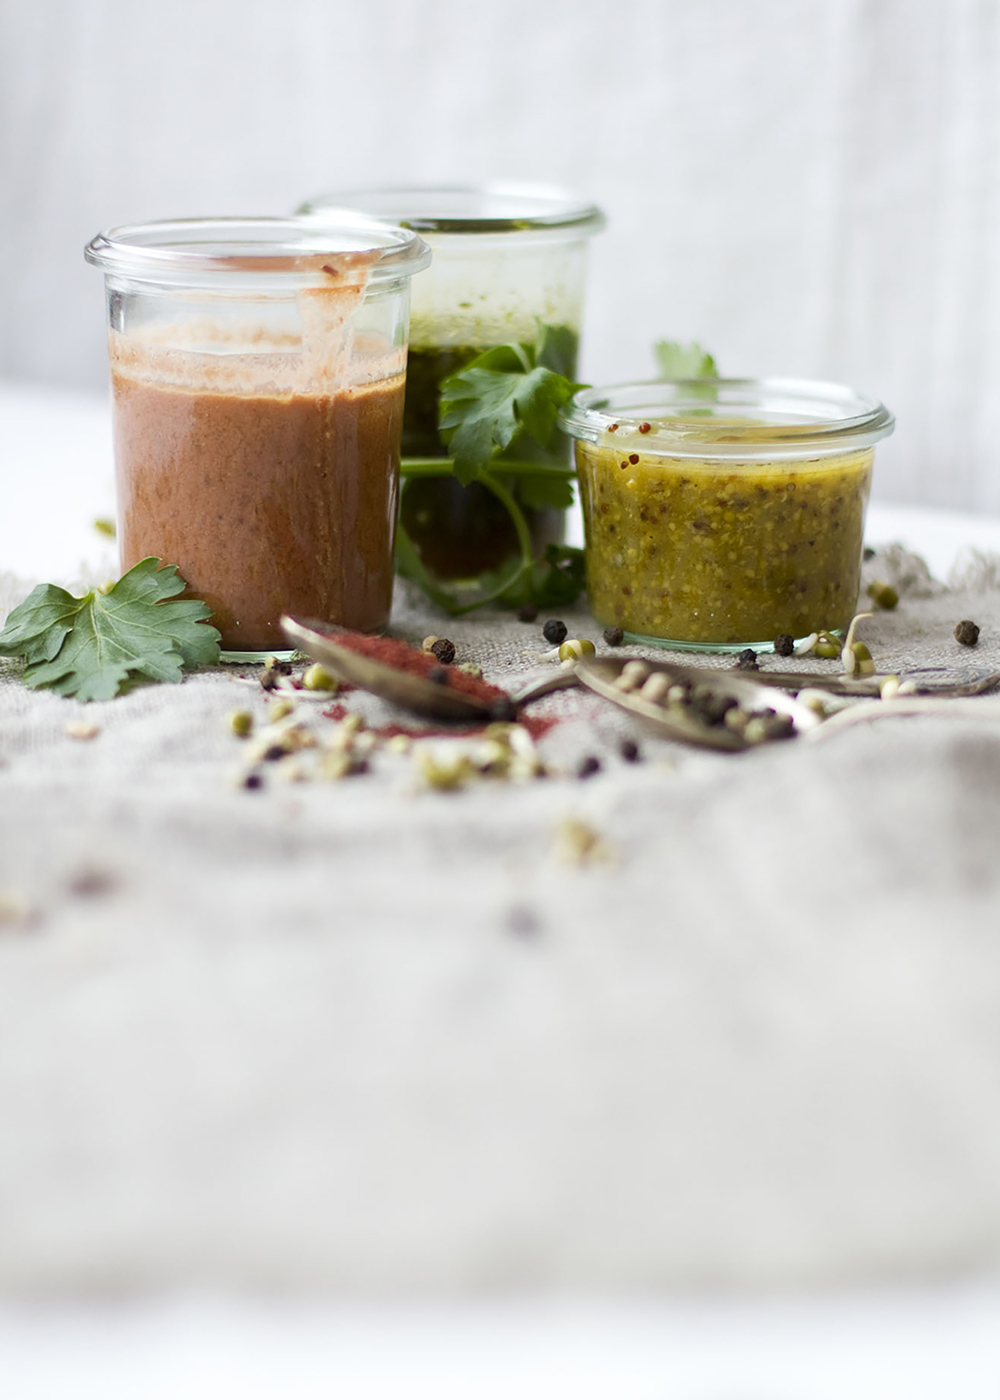 01_NOMNOM_Salat_Dressings.jpg